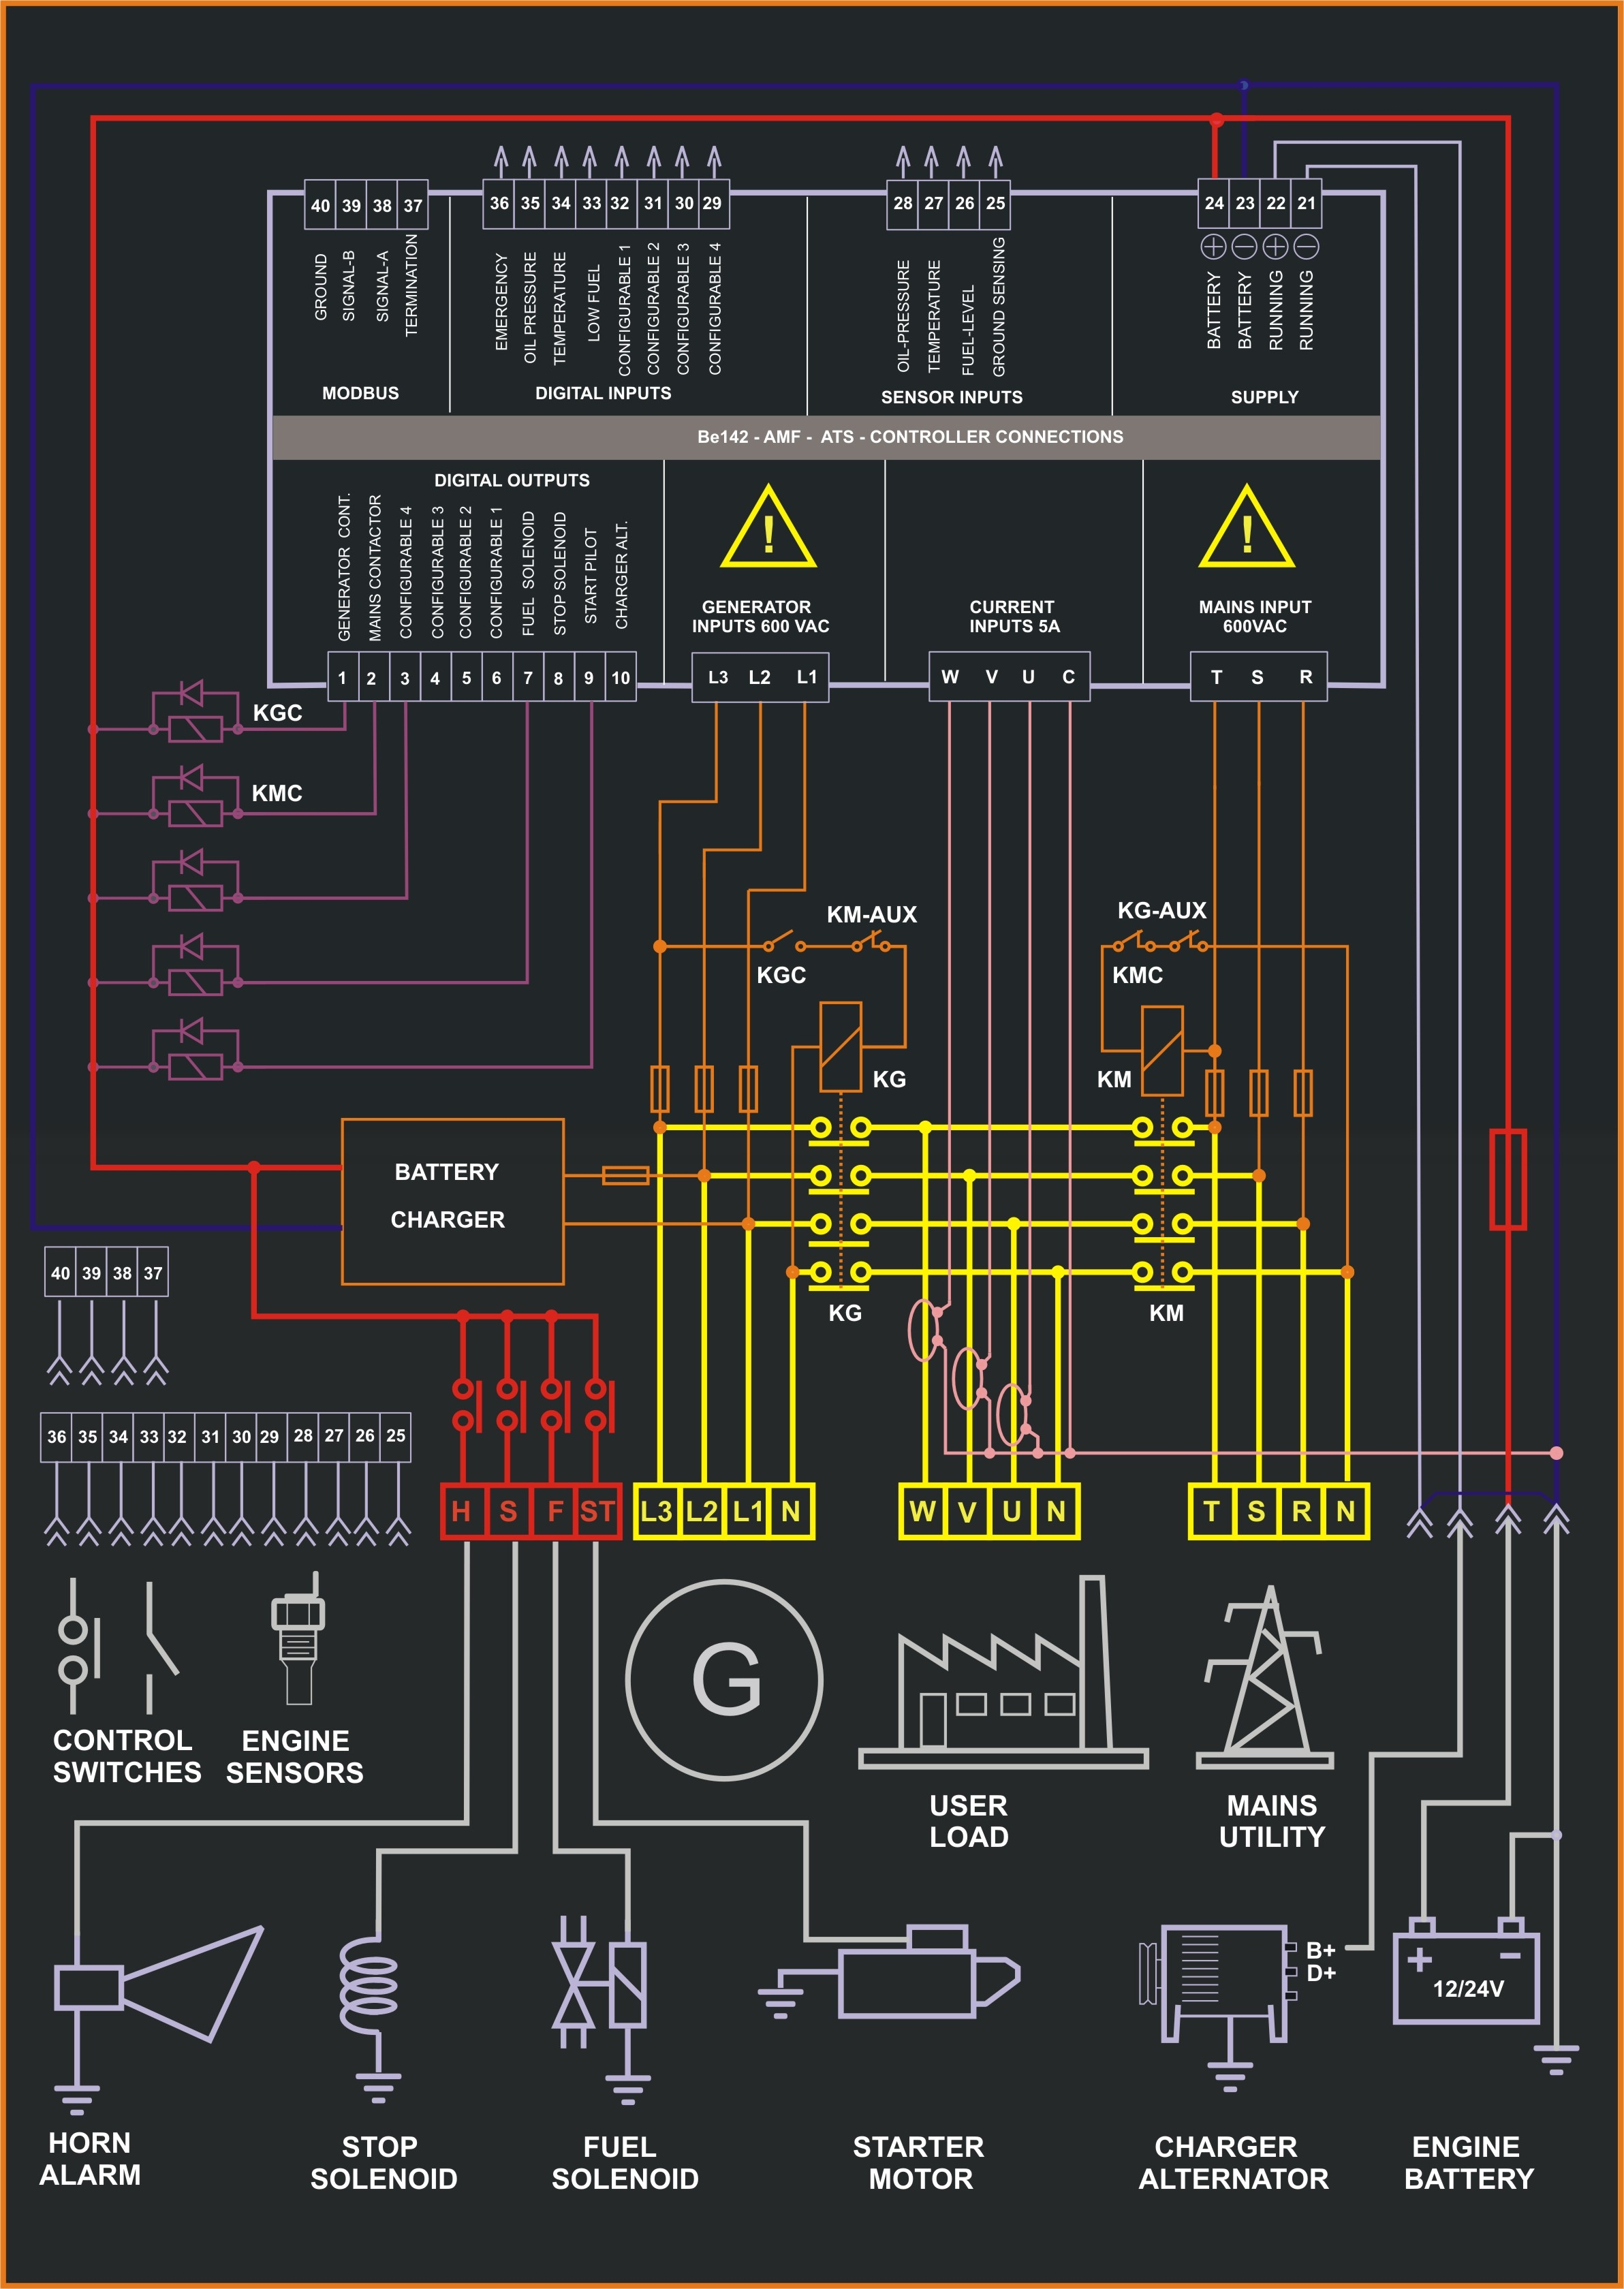 Control Panel Circuit Diagram Genset Controller Vs Wiring